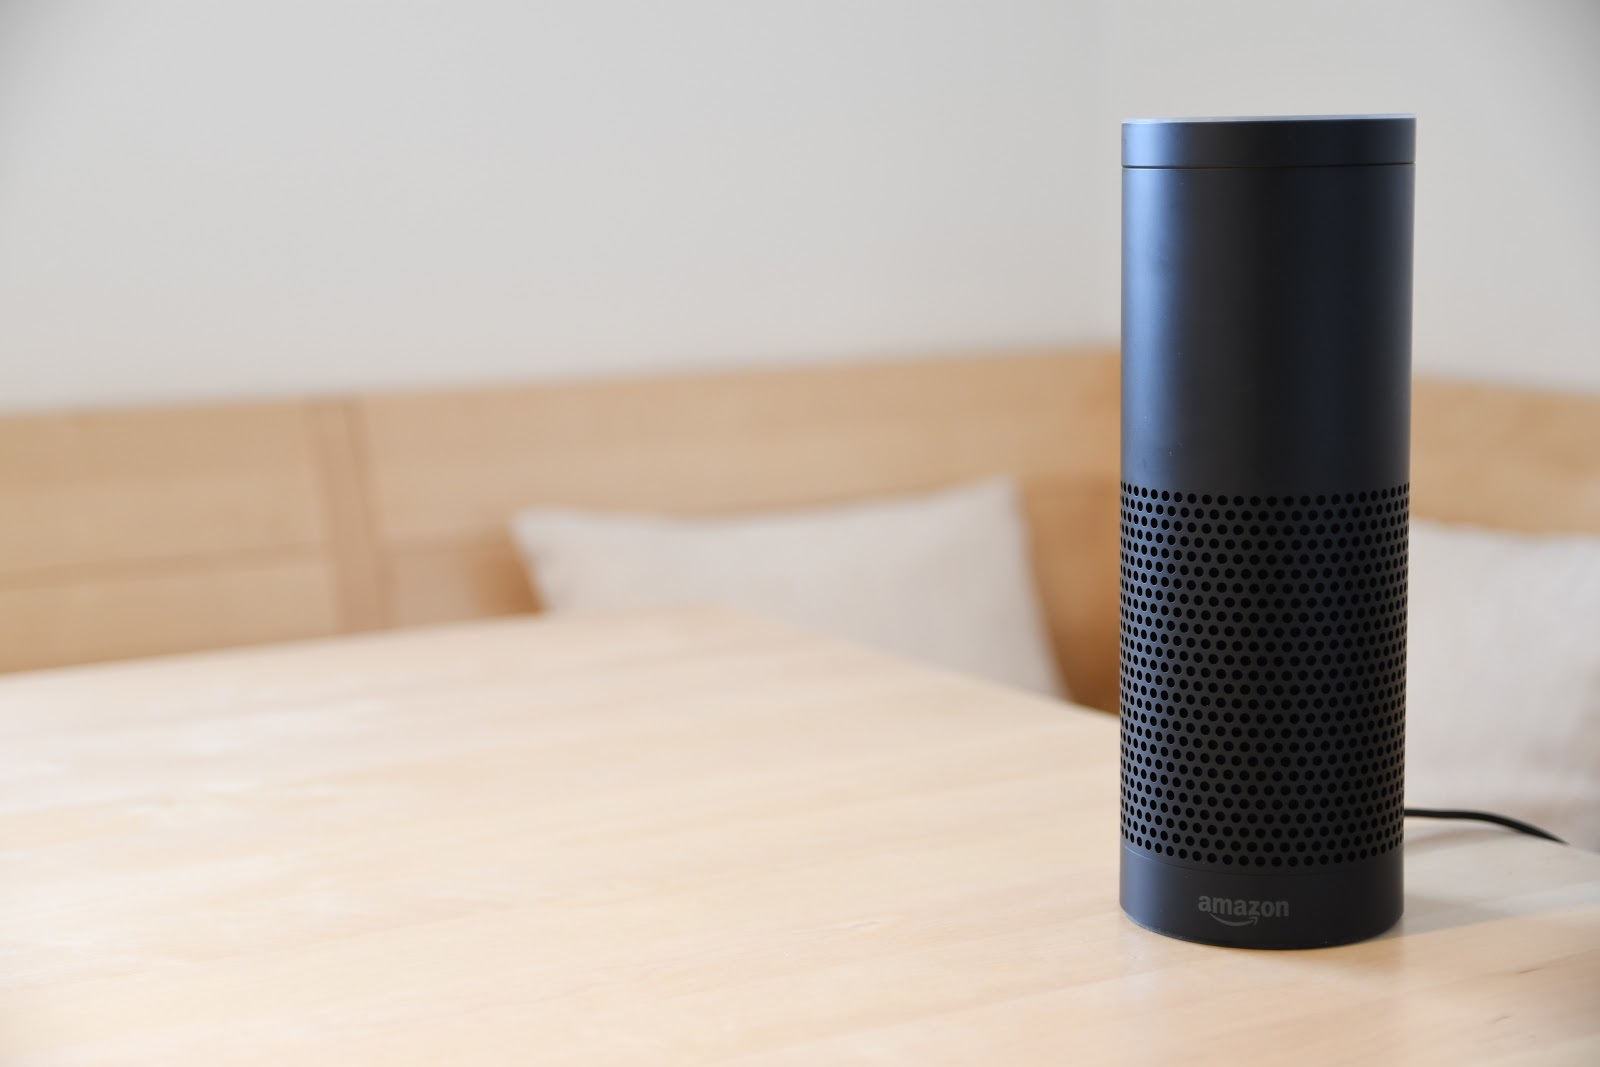 Alexa and HIPAA